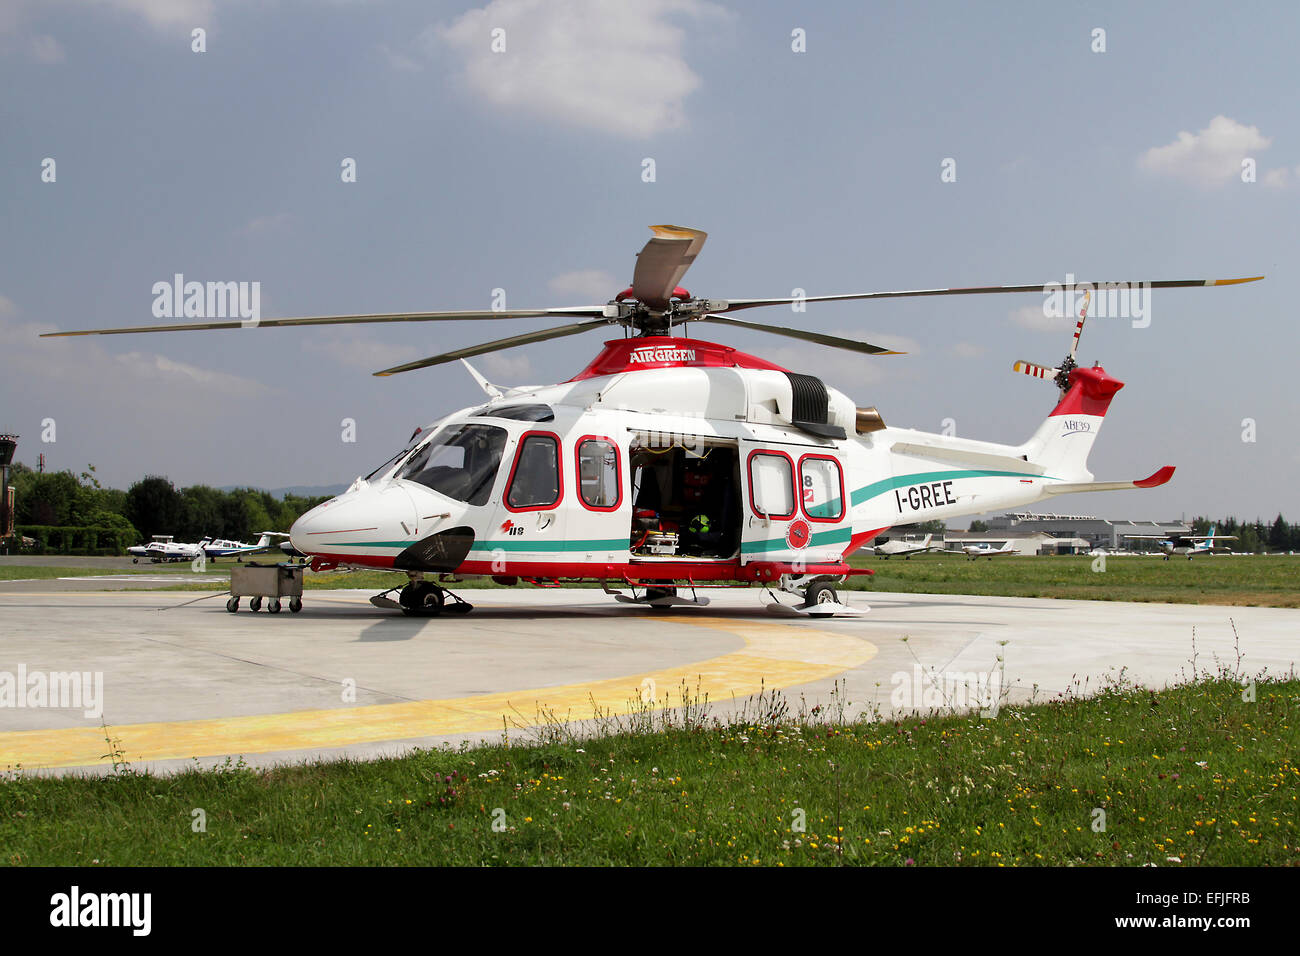 AgustaWestland AW139 Air Ambulance, Collegno, Italy. - Stock Image